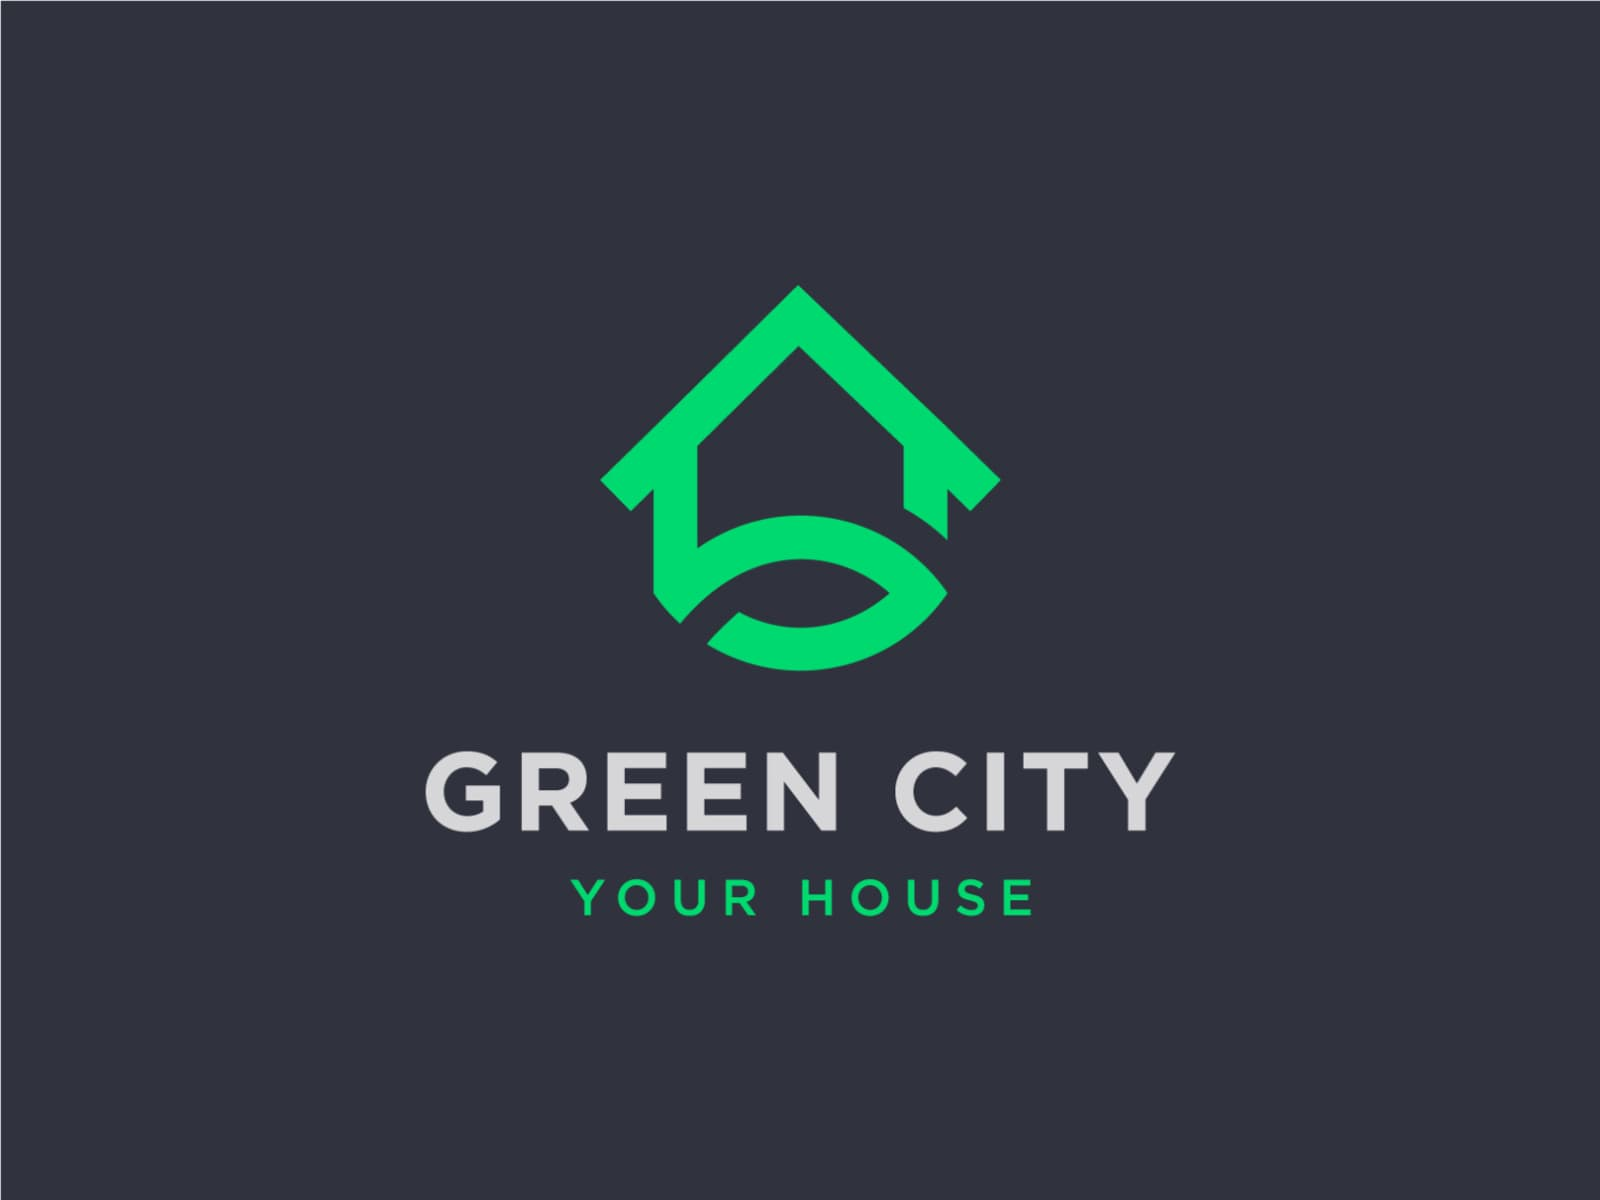 Green City by Tistio